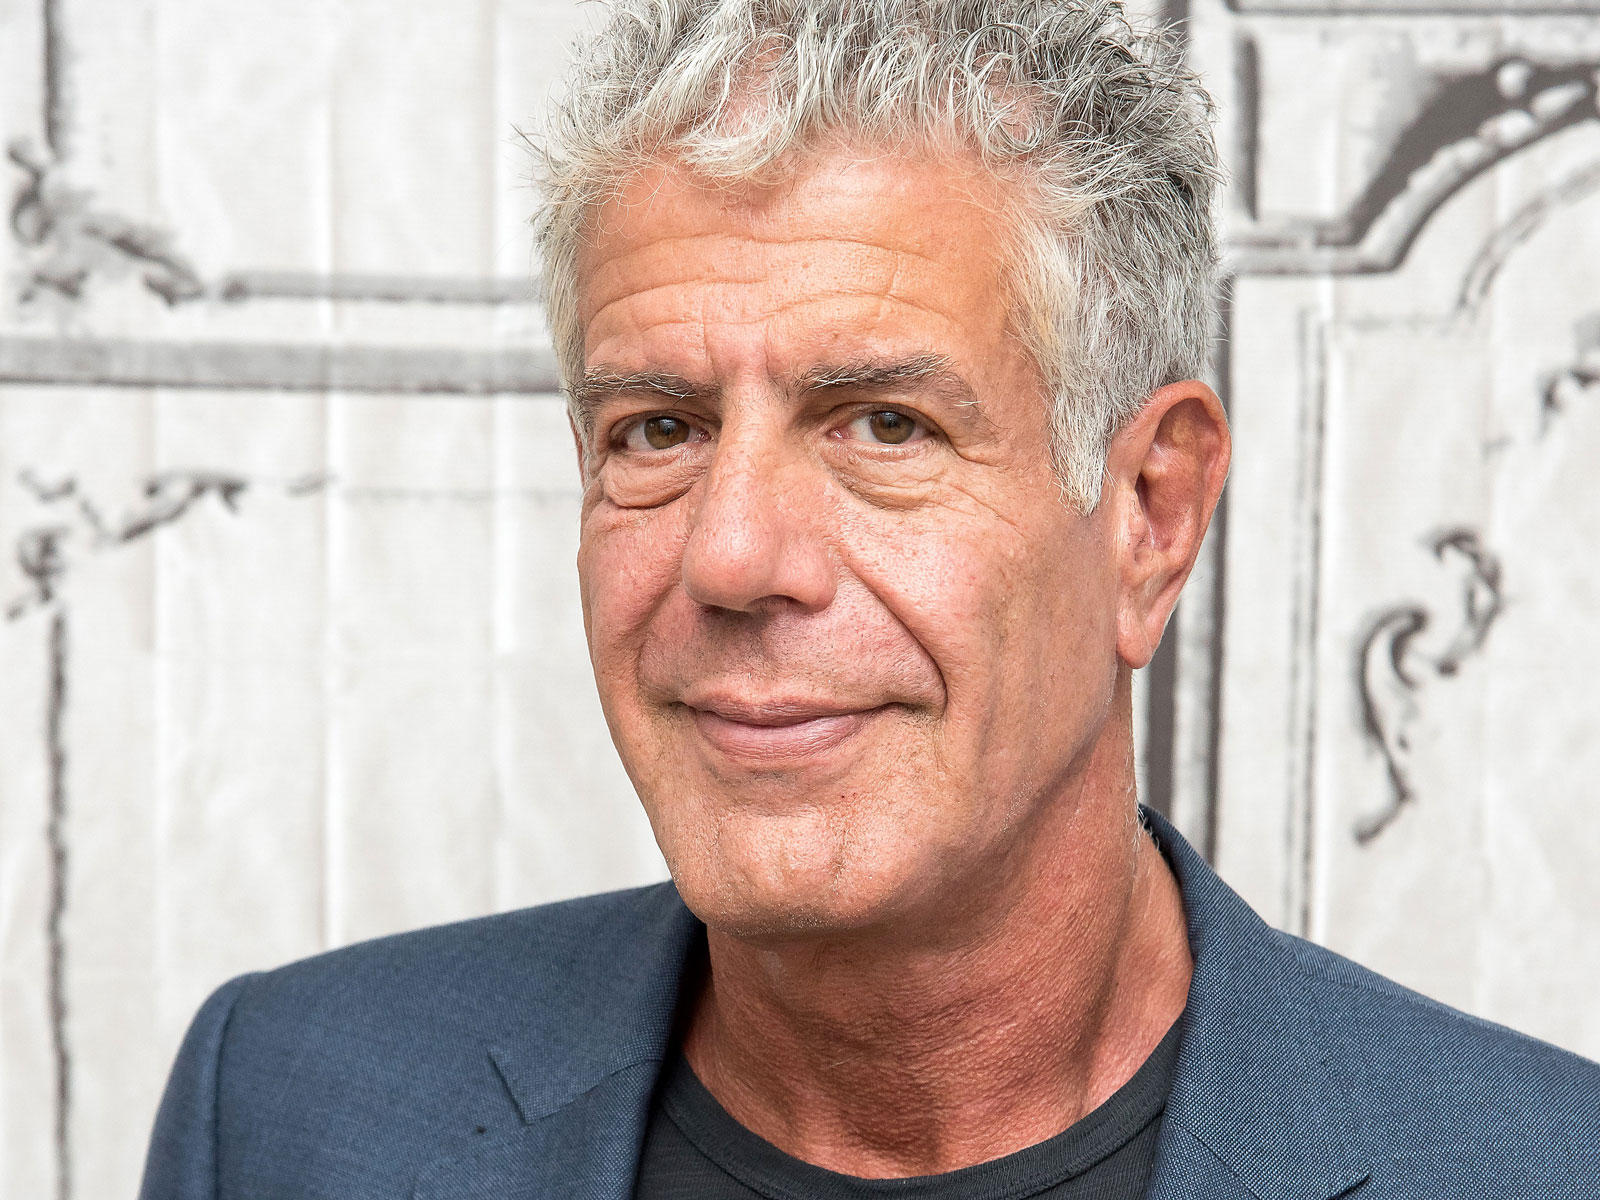 anthony-bourdain-auction-FT-BLOG0919.jpg